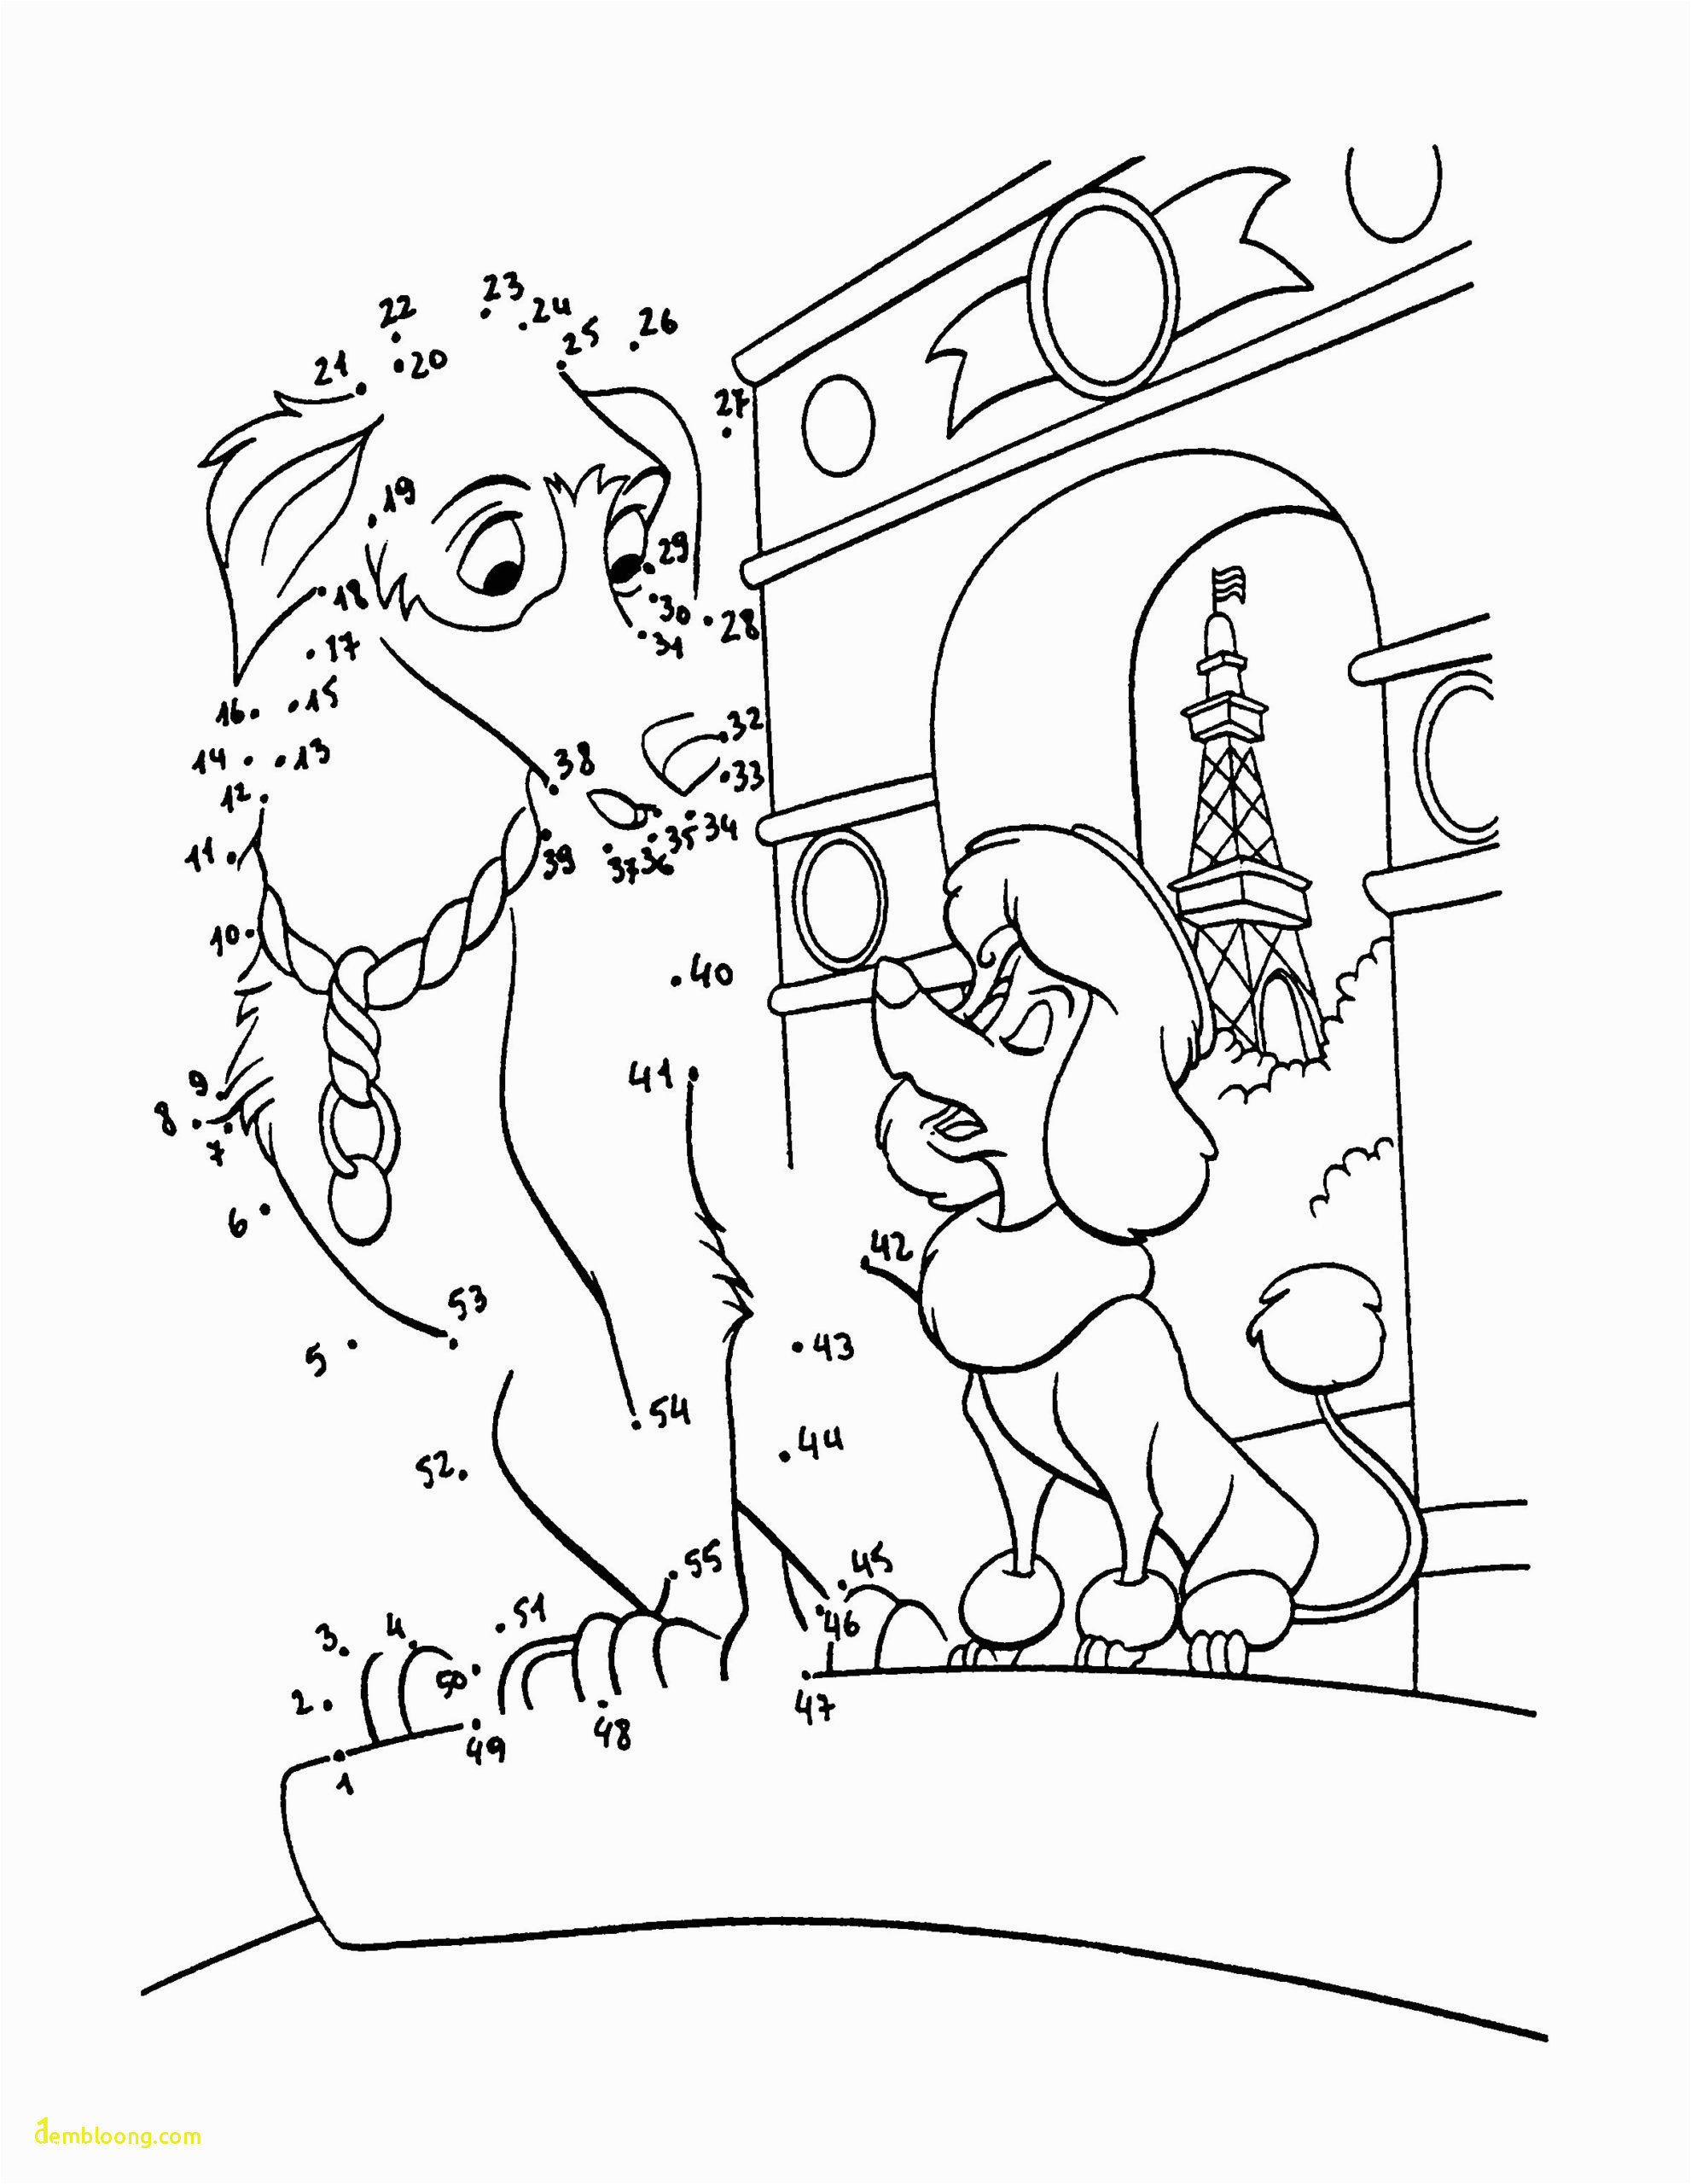 colouring in pictures of dolls best of coloring pages coloring pages for kids disney coloring of colouring in pictures of dolls